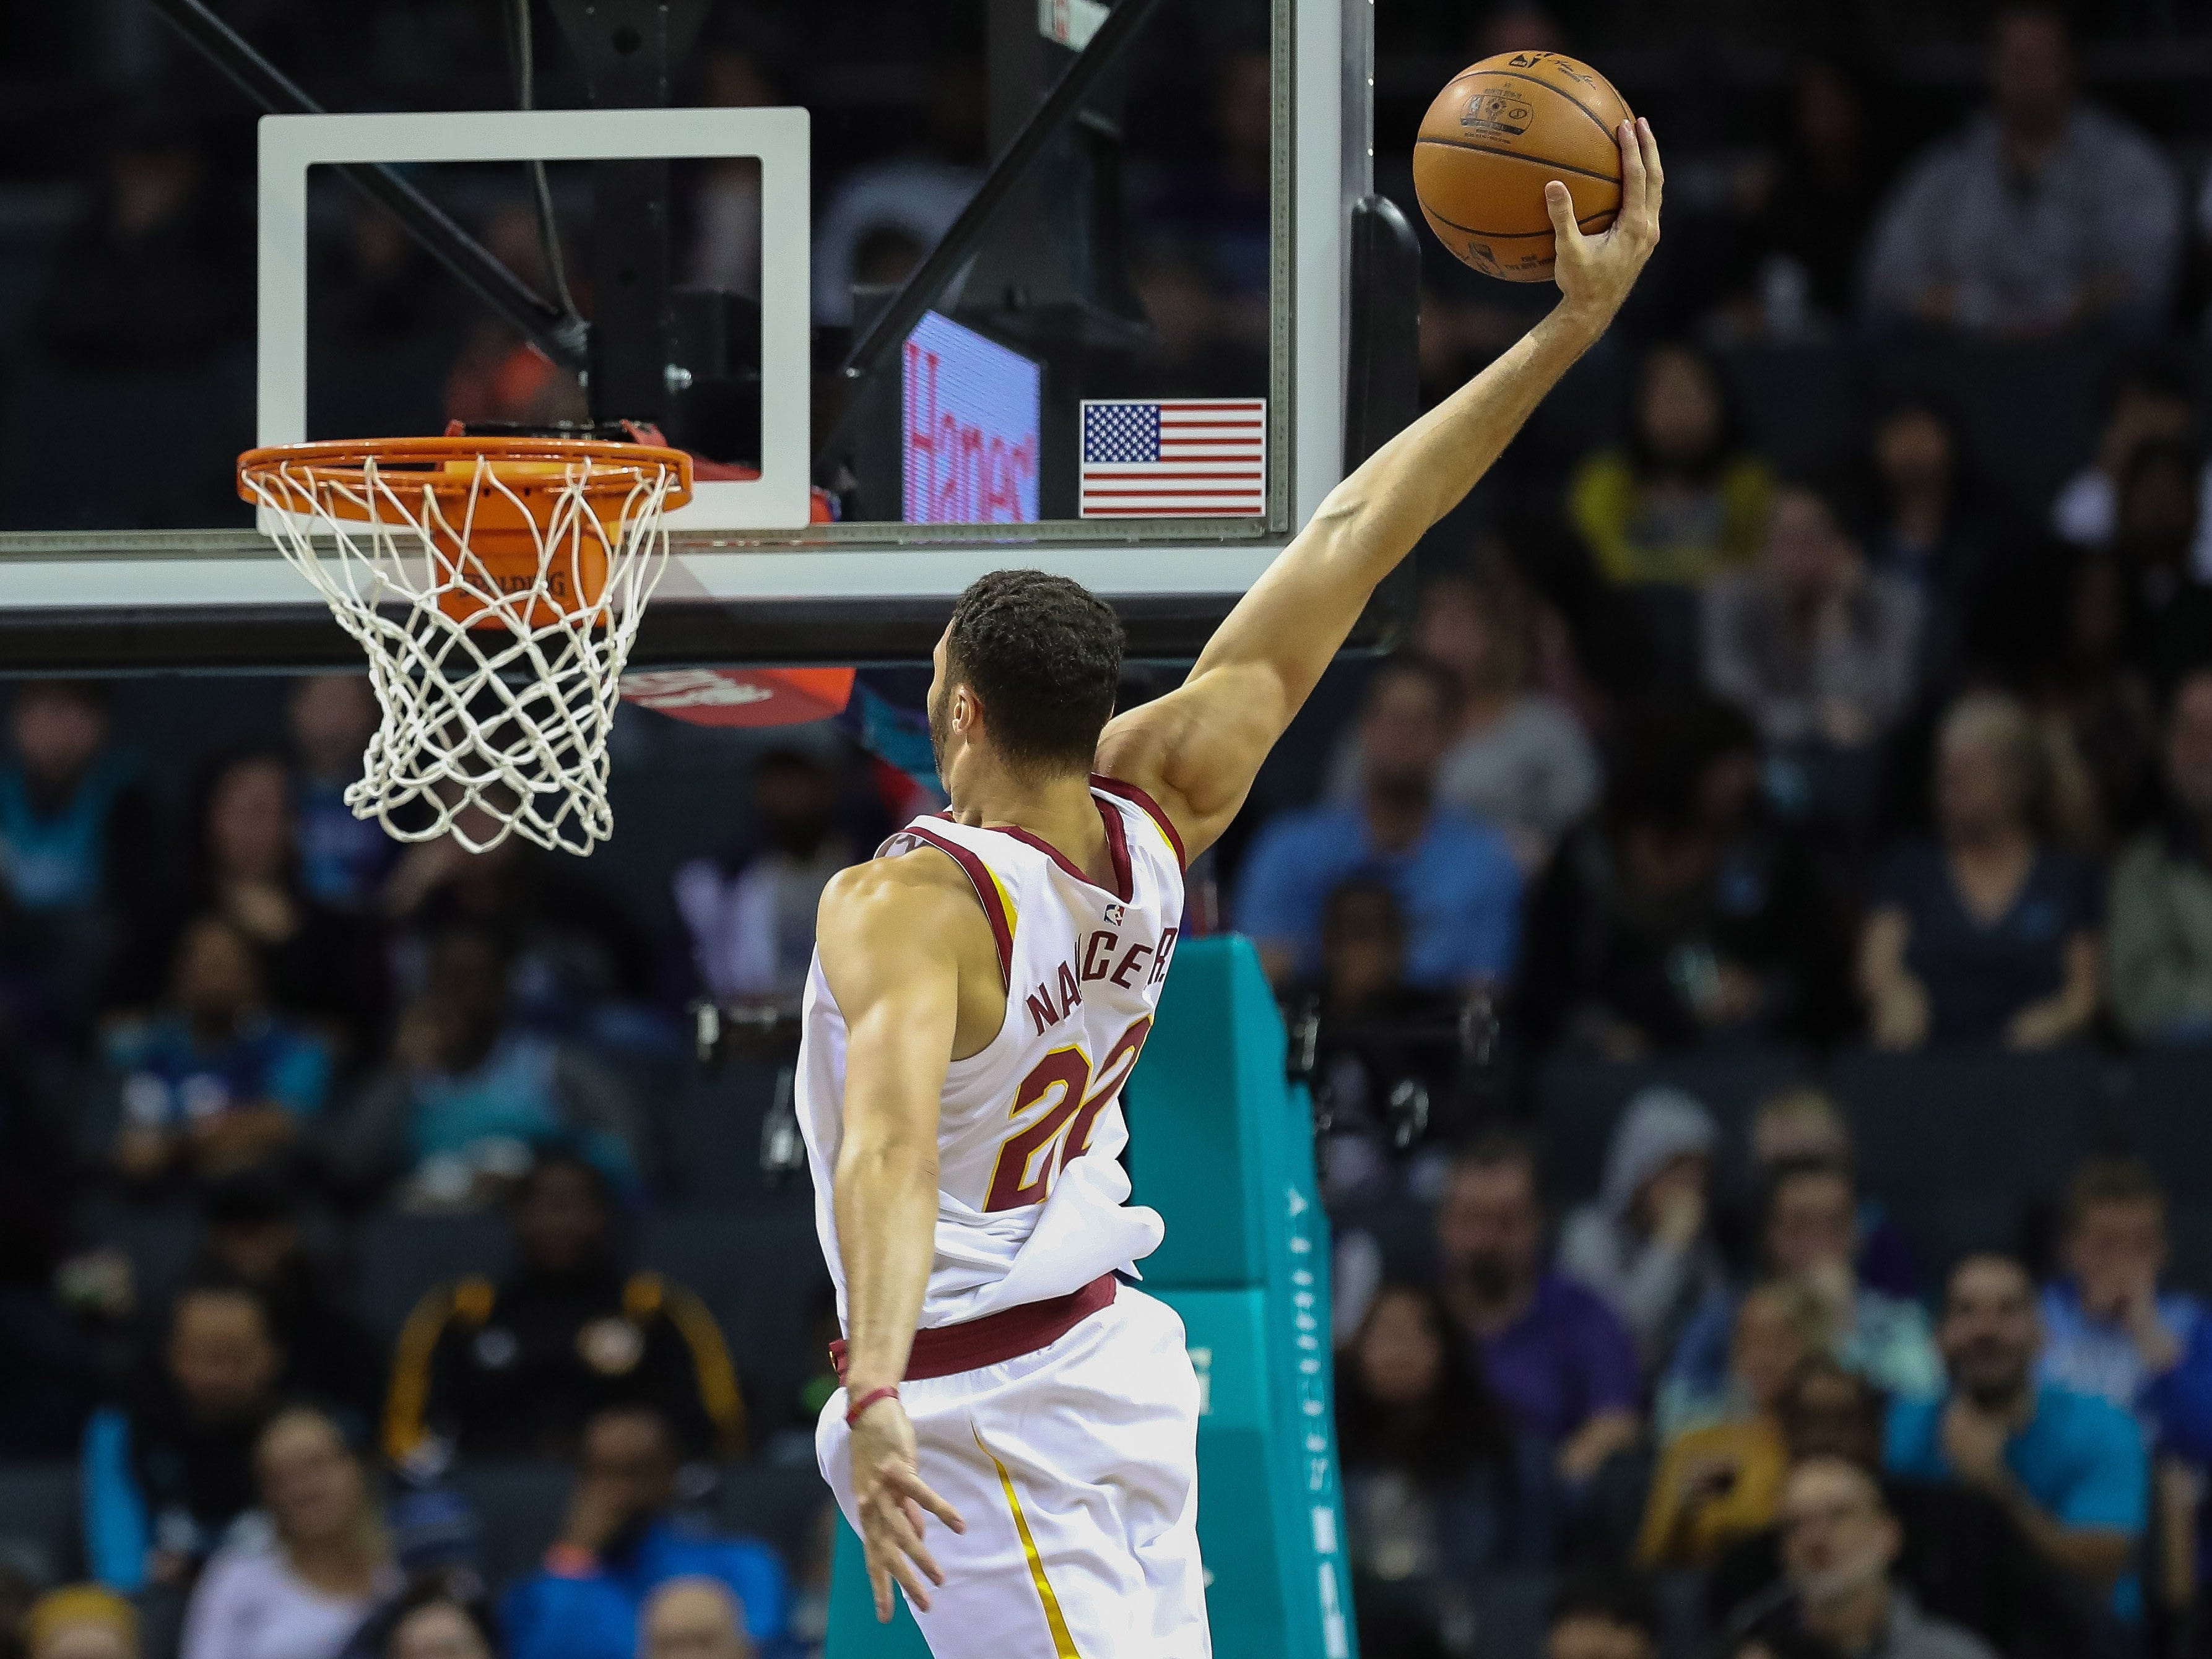 Nov. 3: Cavaliers forward Larry Nance Jr. soars to the hoop for a one-handed slam against the Hornets in Charlotte.